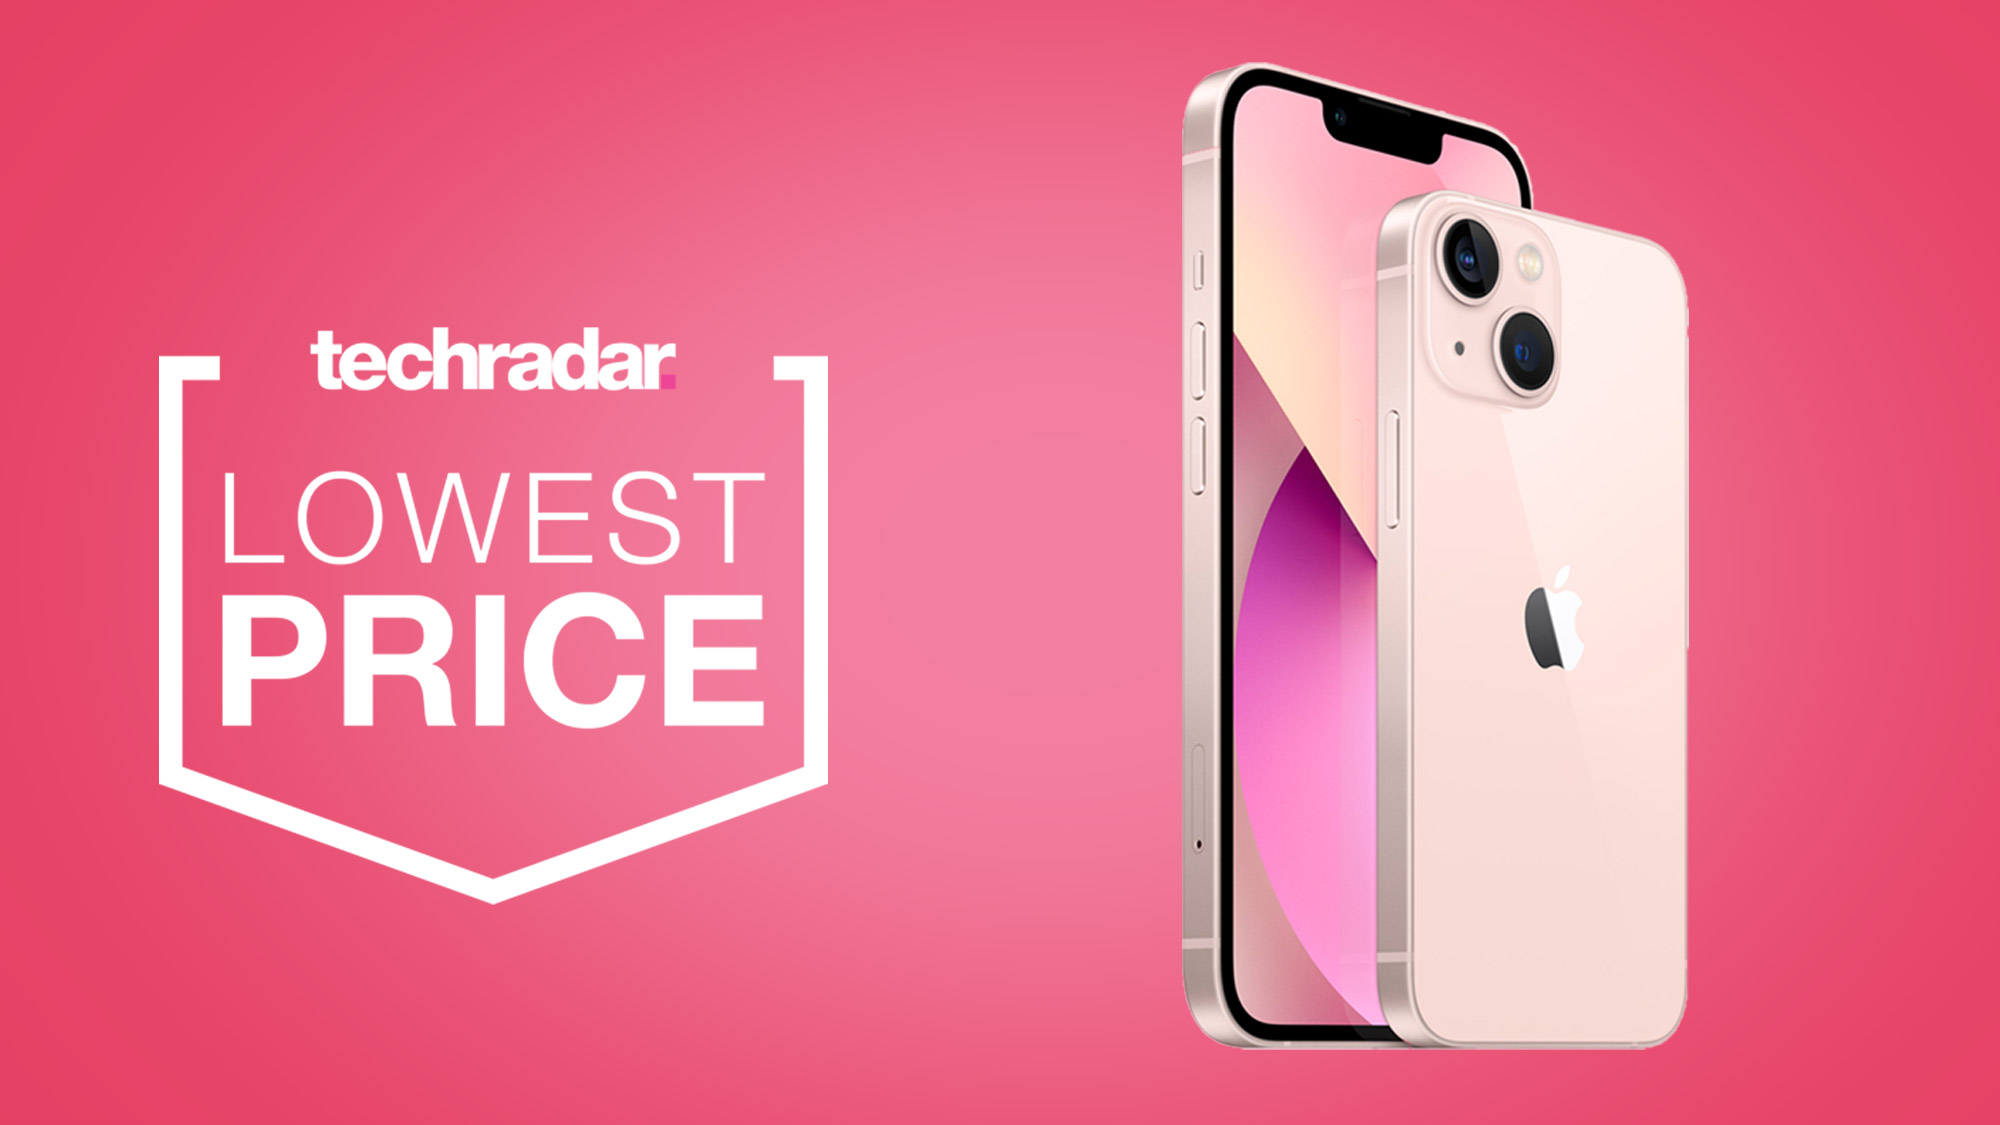 Sky Mobile has launched some of the cheapest iPhone 13 deals for pre-order